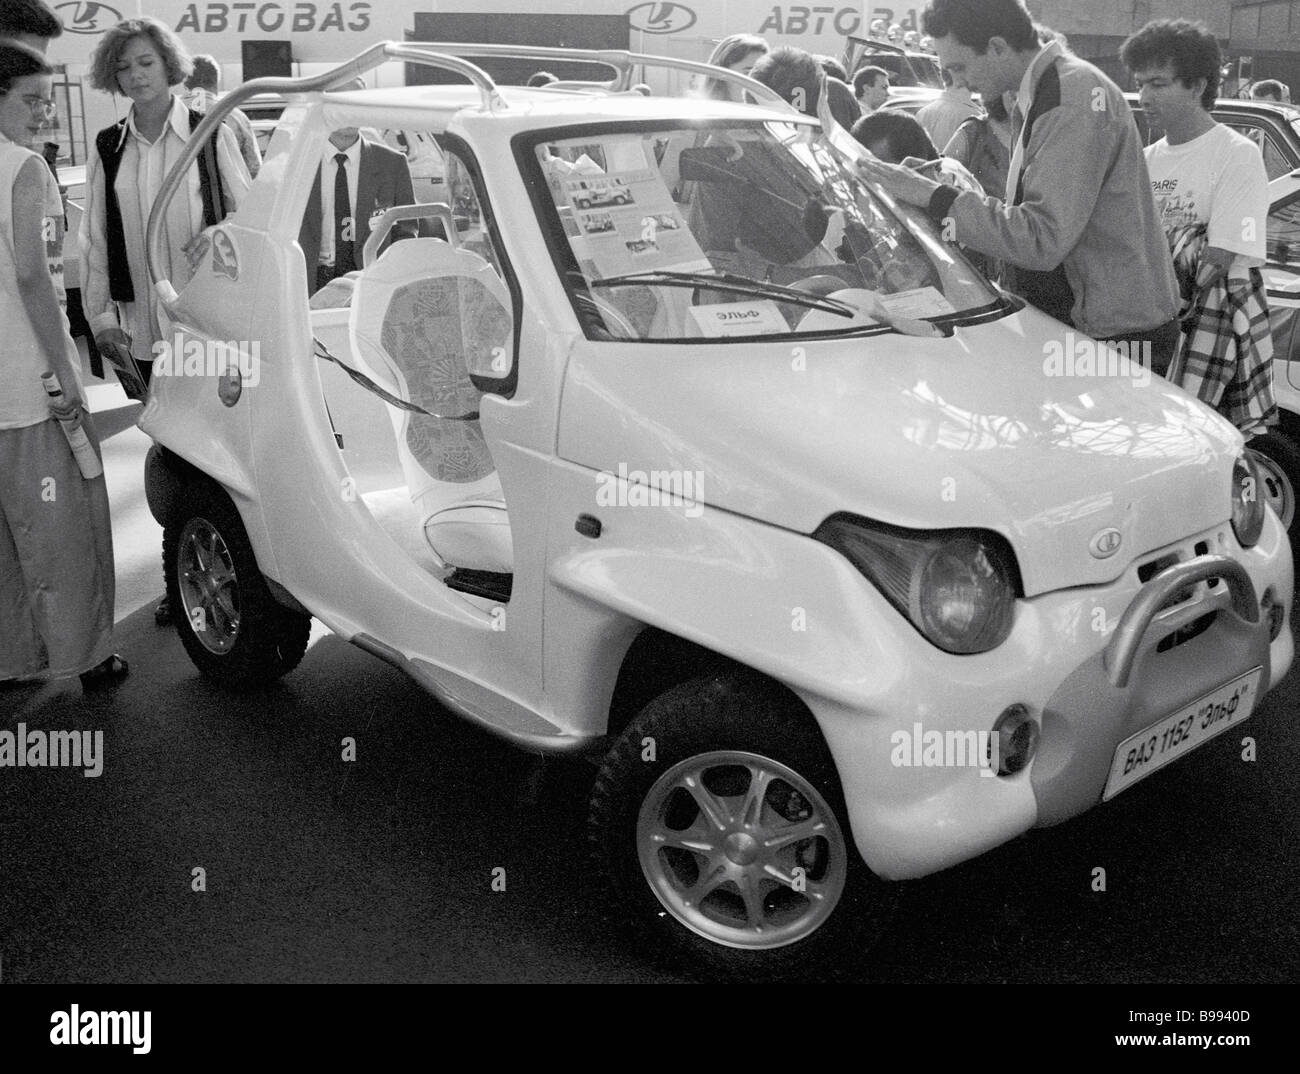 Visitors to 1995 international Moscow car show admire Lada Elf car - Stock Image